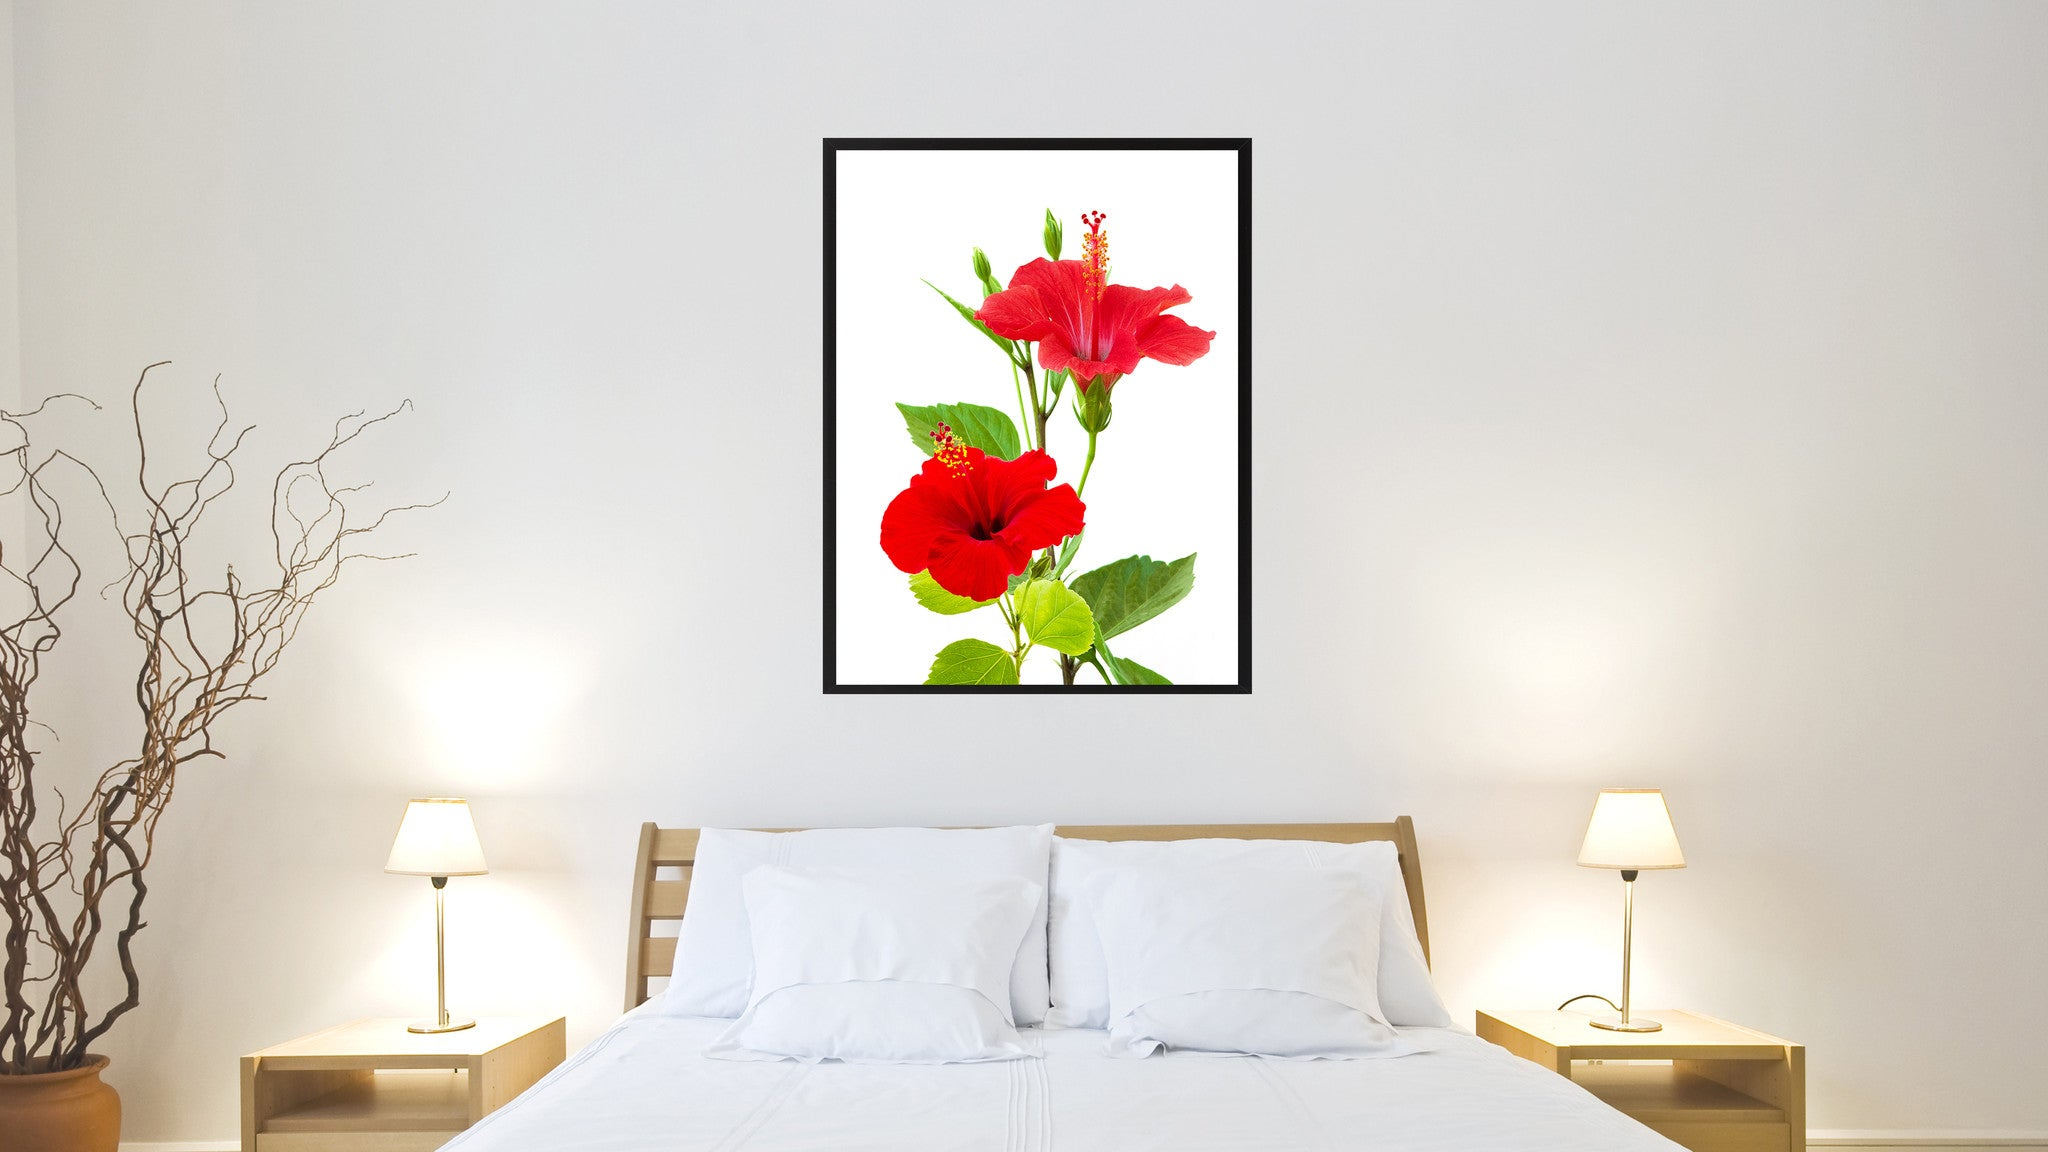 Red Hibiscus Flower Framed Canvas Print Home Décor Wall Art